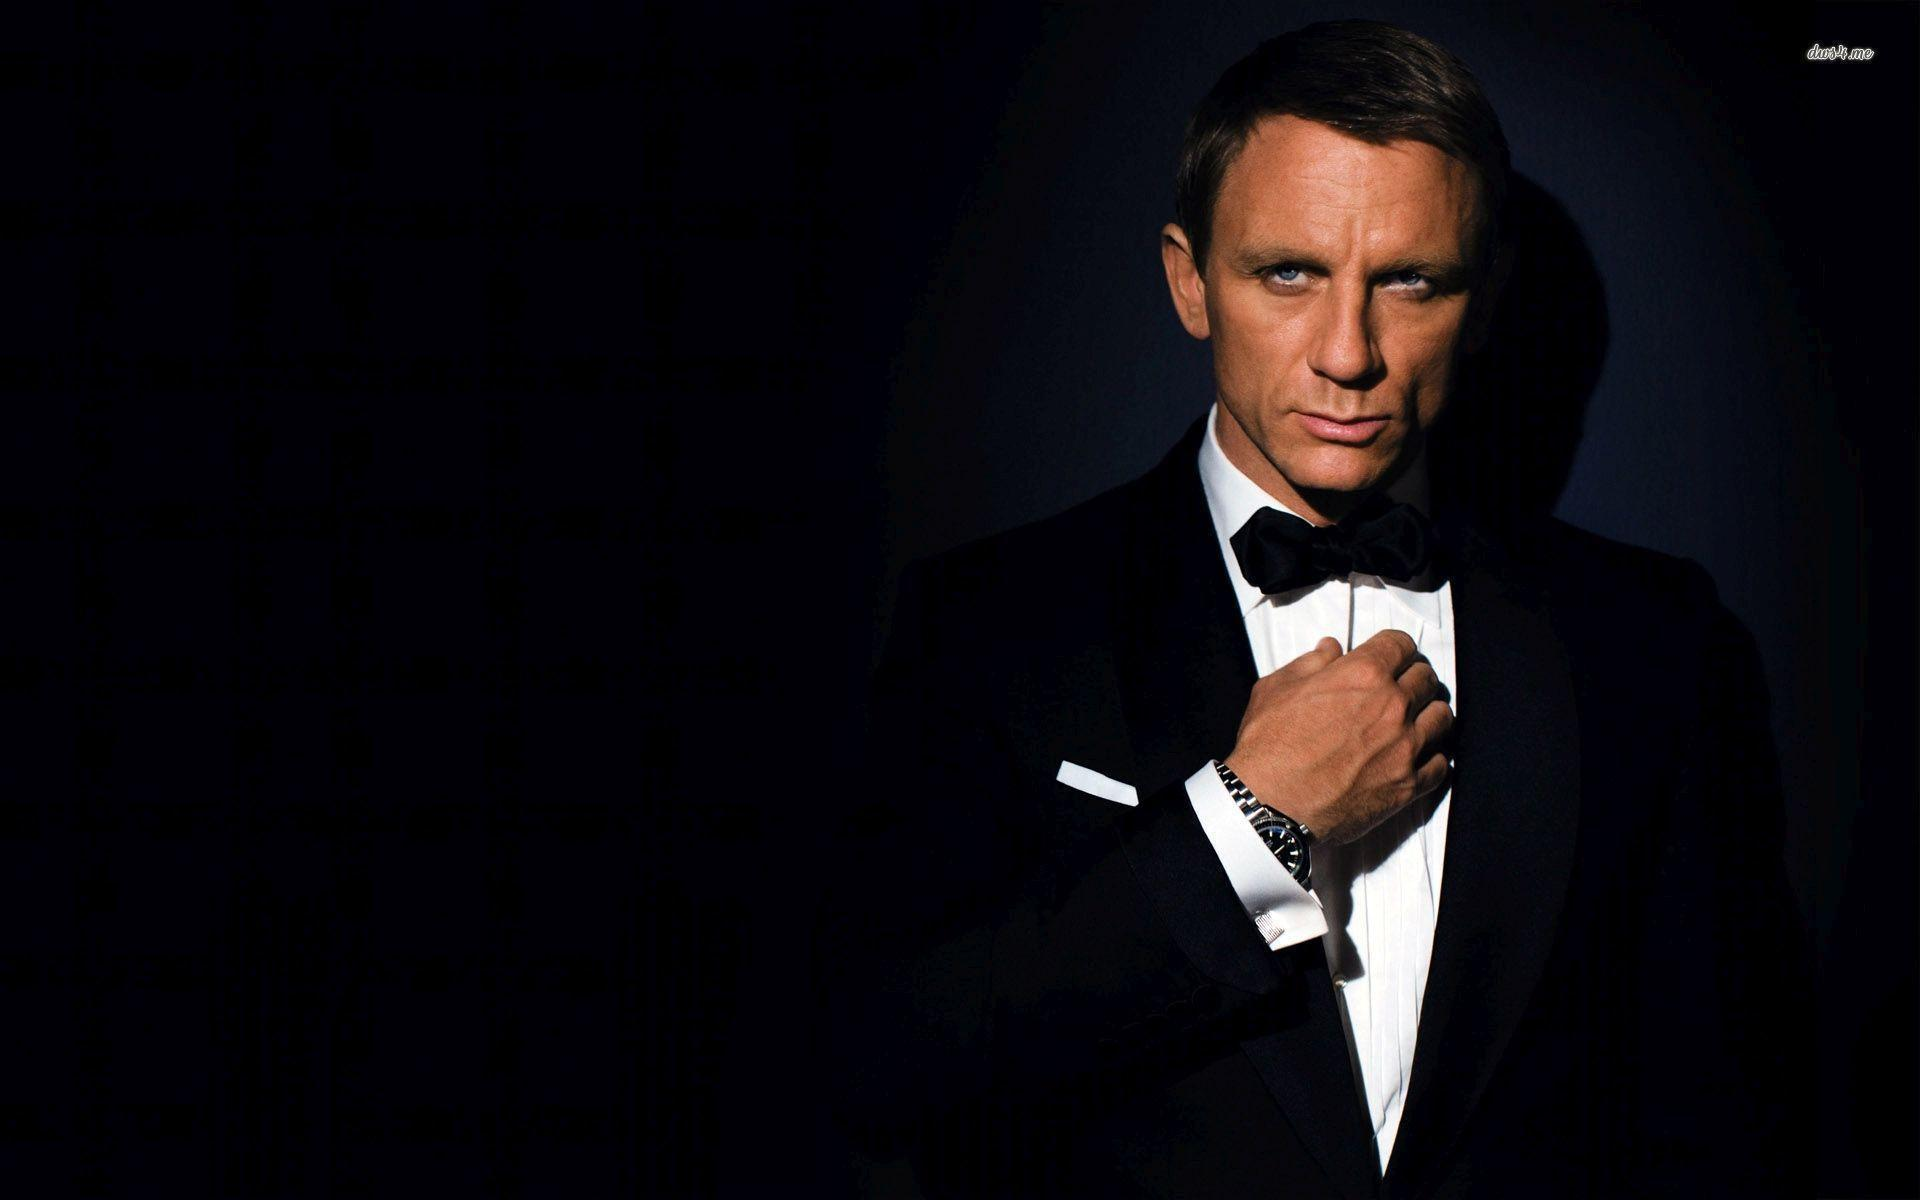 James Bond Wallpapers - Wallpaper Cave дэниэл крэйг